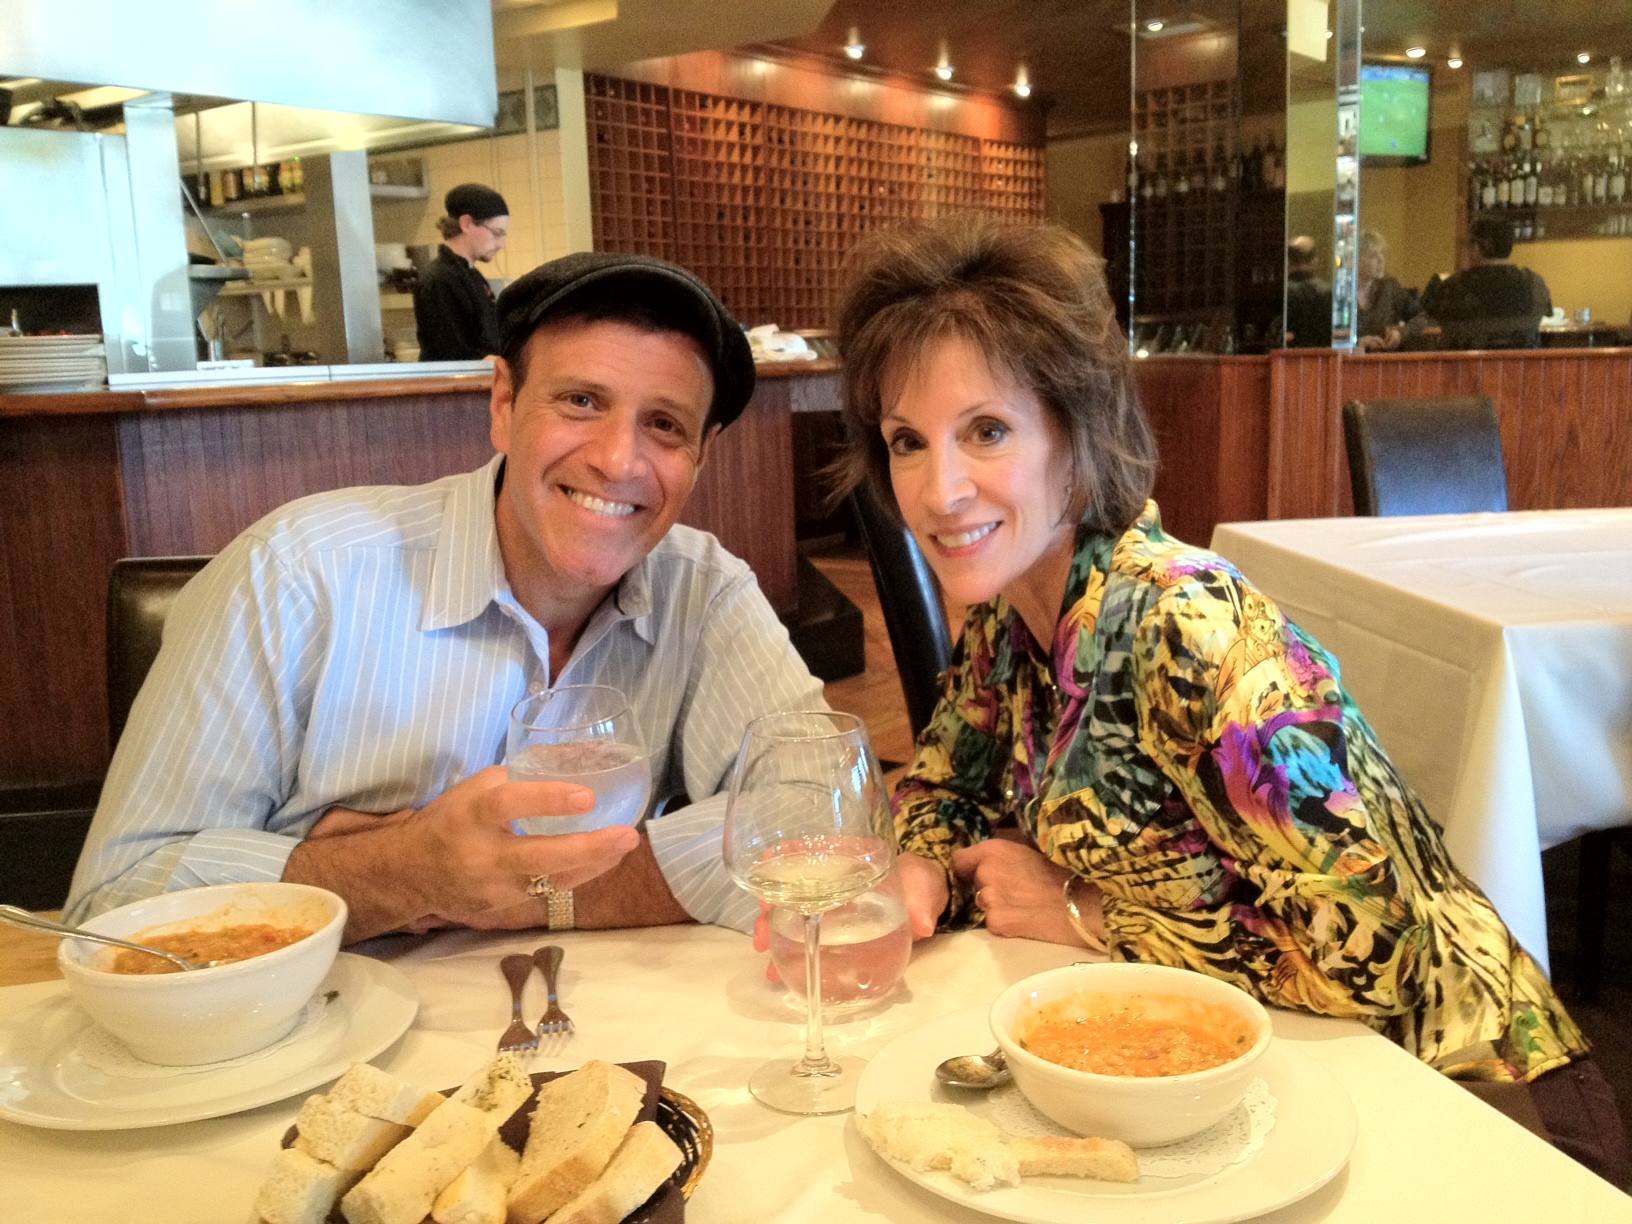 Stephen with Deana Martin